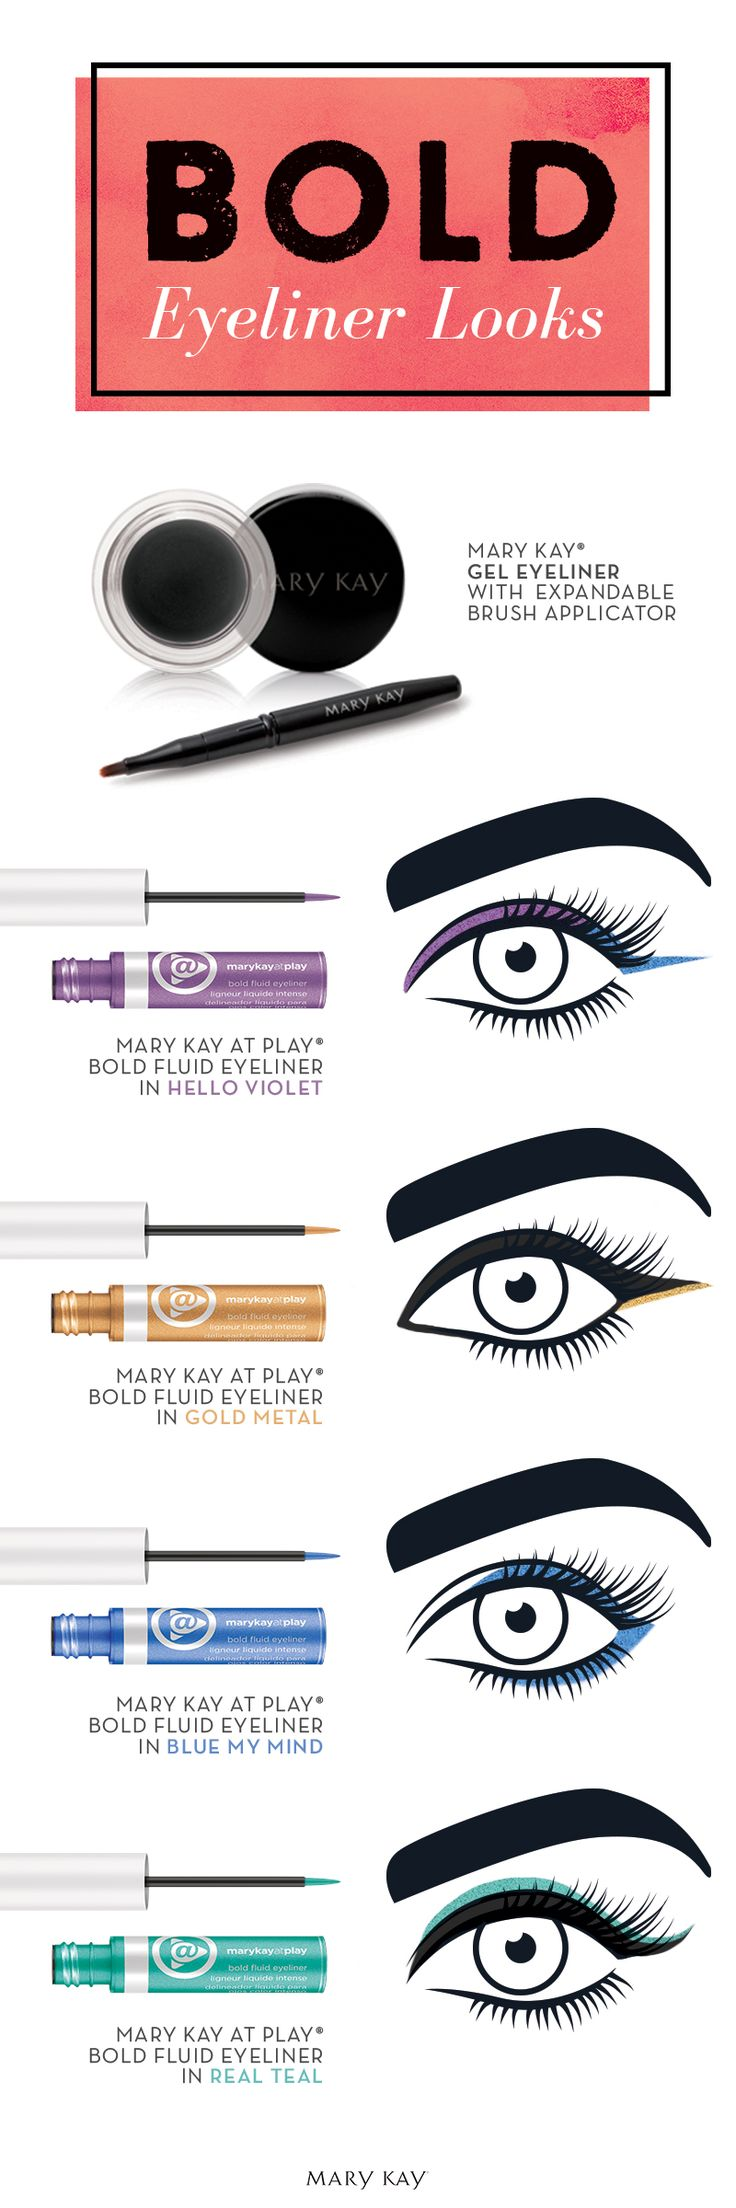 Whether you go for a fun pop of color or an all-out, multicolored work of art, Mary Kay At Play® has you covered with high-impact Bold Fluid Eyeliners. Here's how to rock the summer's hottest shades.